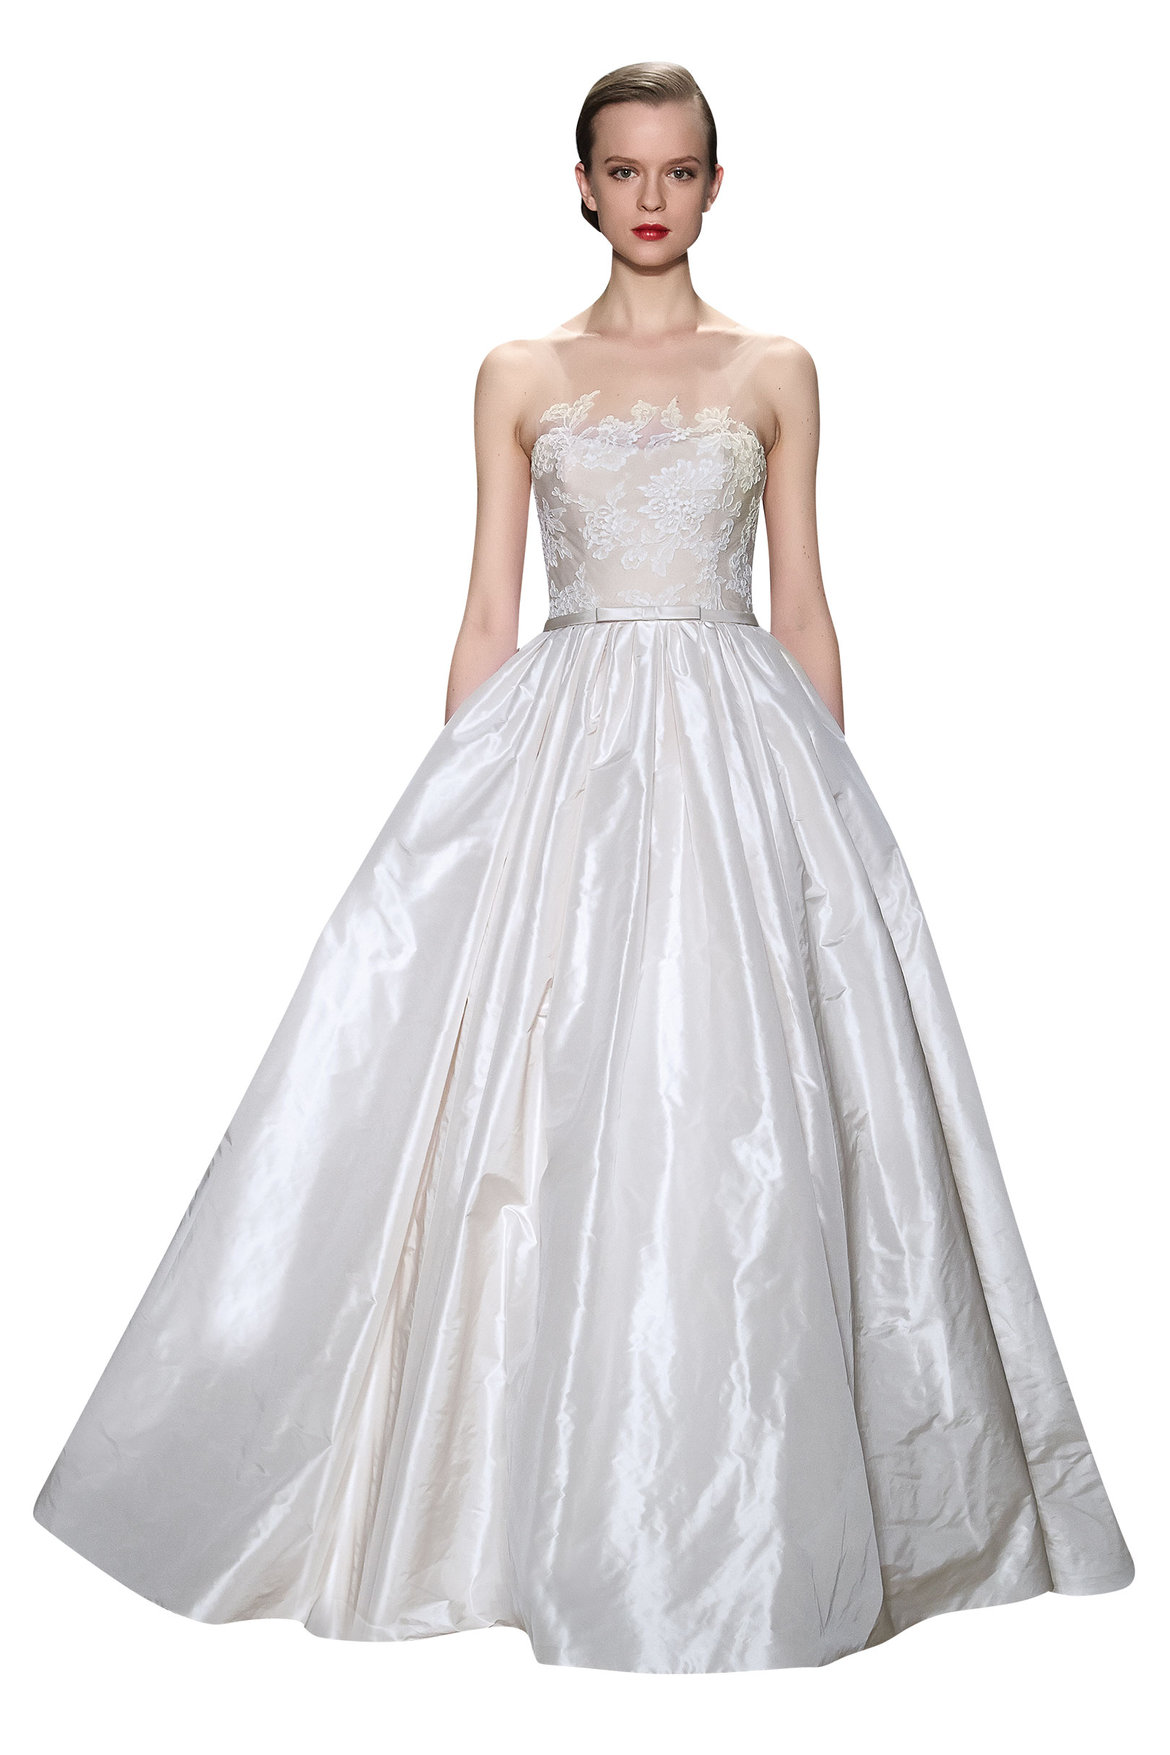 Best Wedding Dress for Your Body Type Page 6 | BridalGuide